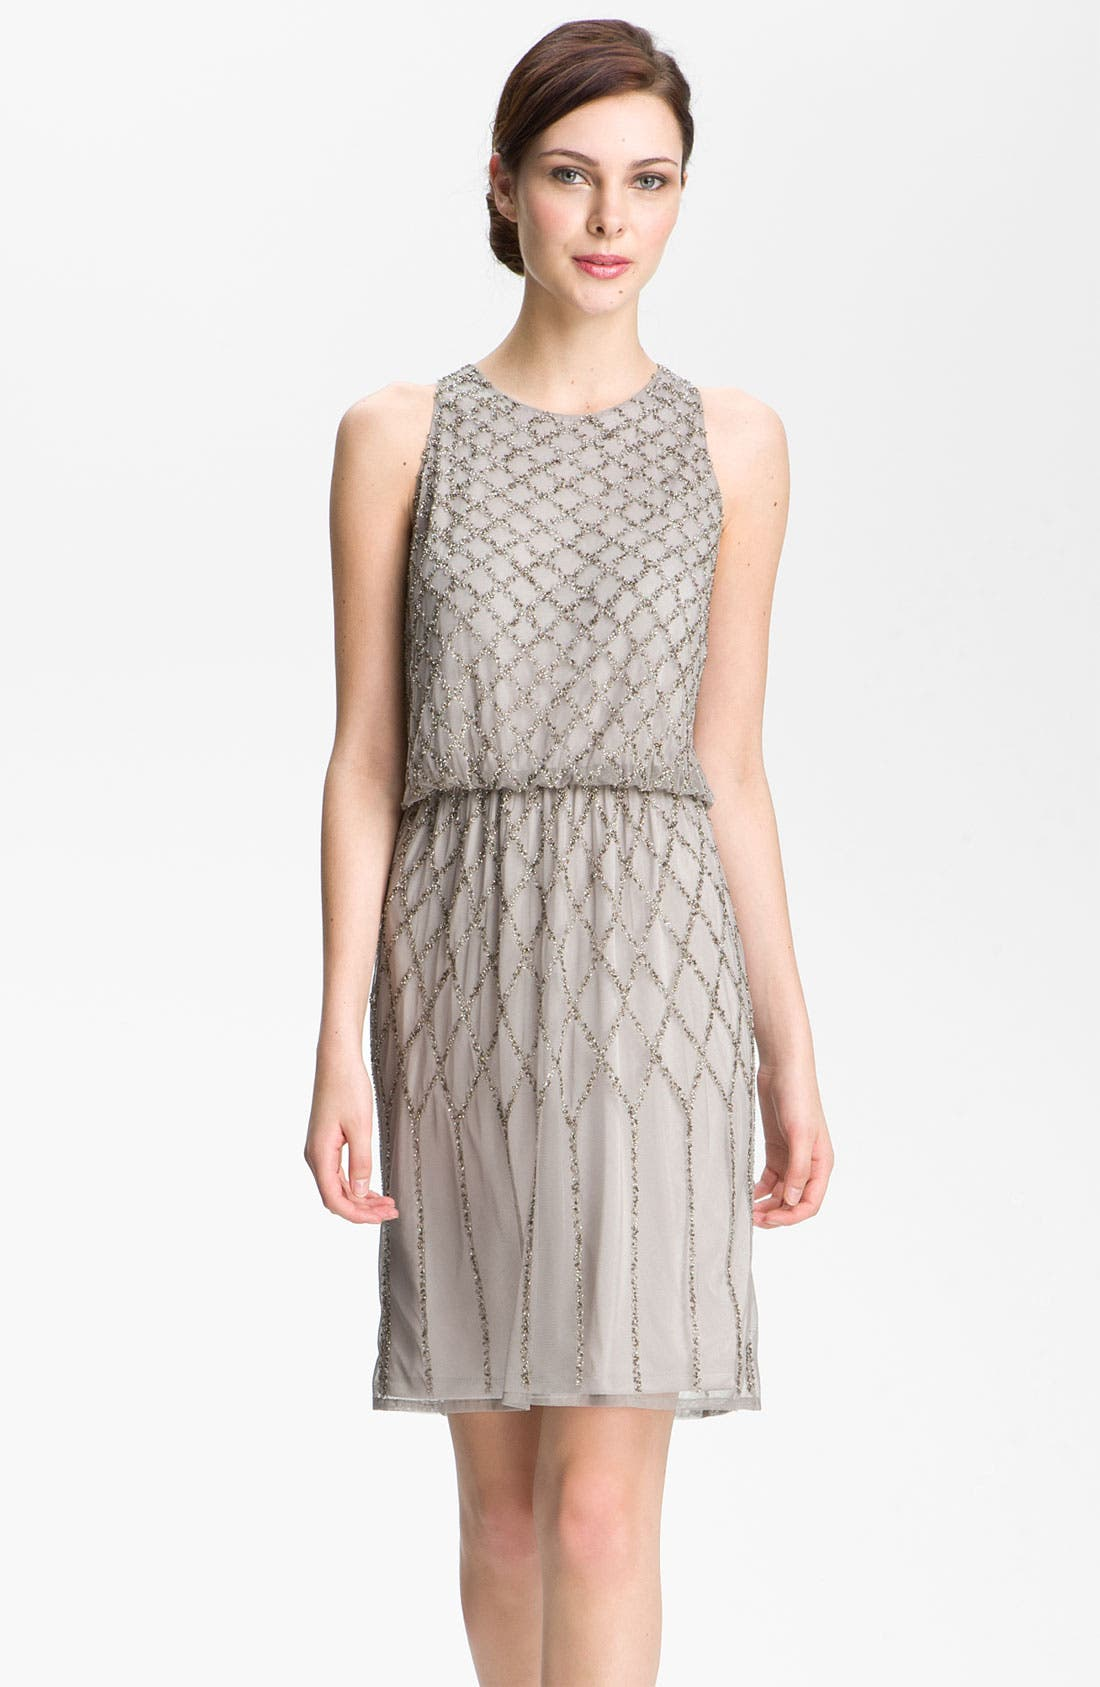 Alternate Image 1 Selected - Adrianna Papell Beaded Blouson Dress (Petite)